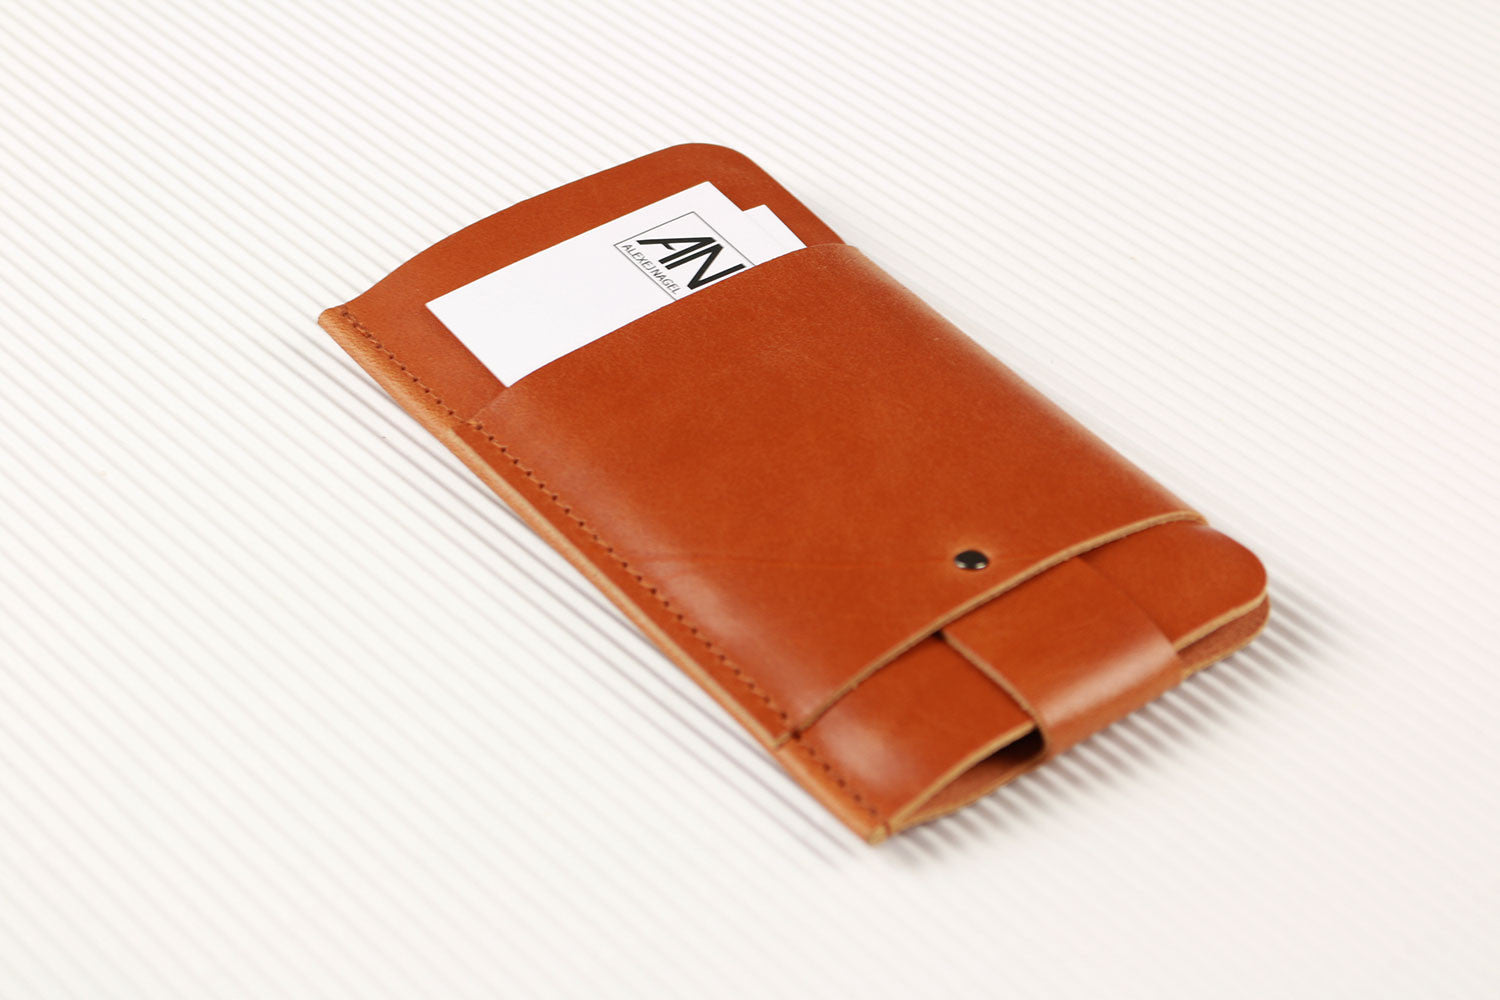 iPhone 6 Plus/6S Plus/7 Plus Slim Fit Hülle aus Leder - Cognac